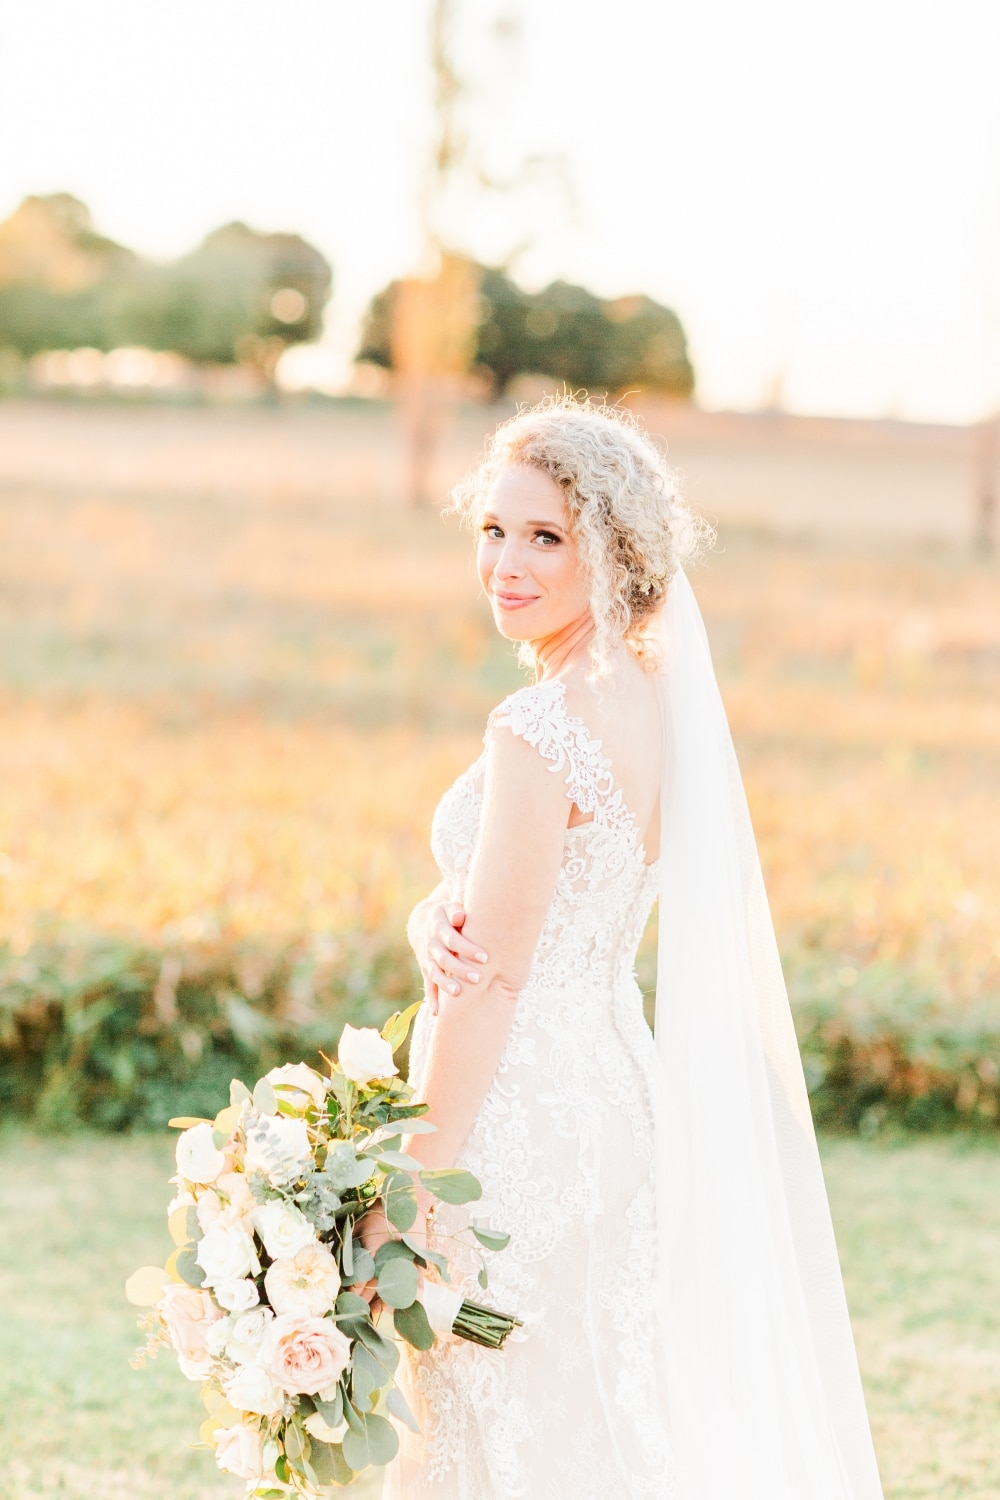 fall wedding with bride in lace gown and white rose bouquet